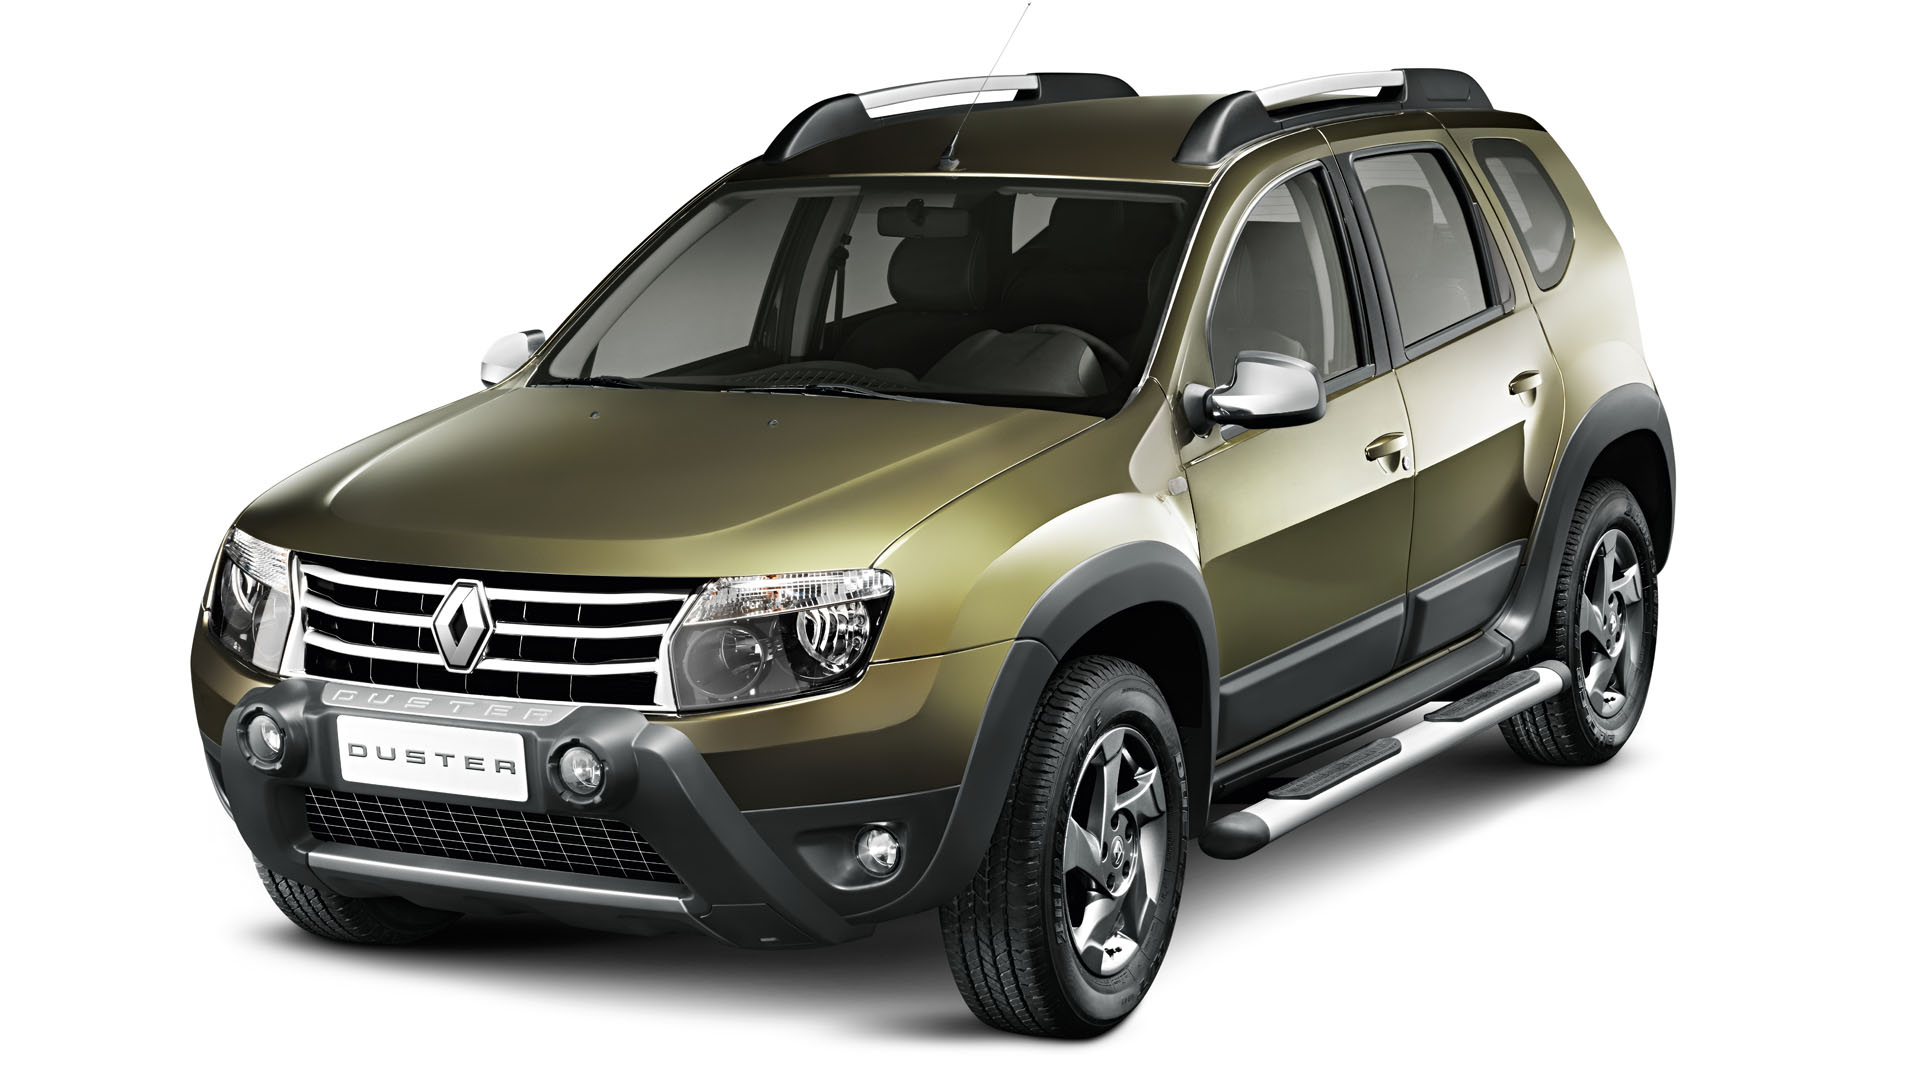 2015 renault duster pictures information and specs auto. Black Bedroom Furniture Sets. Home Design Ideas